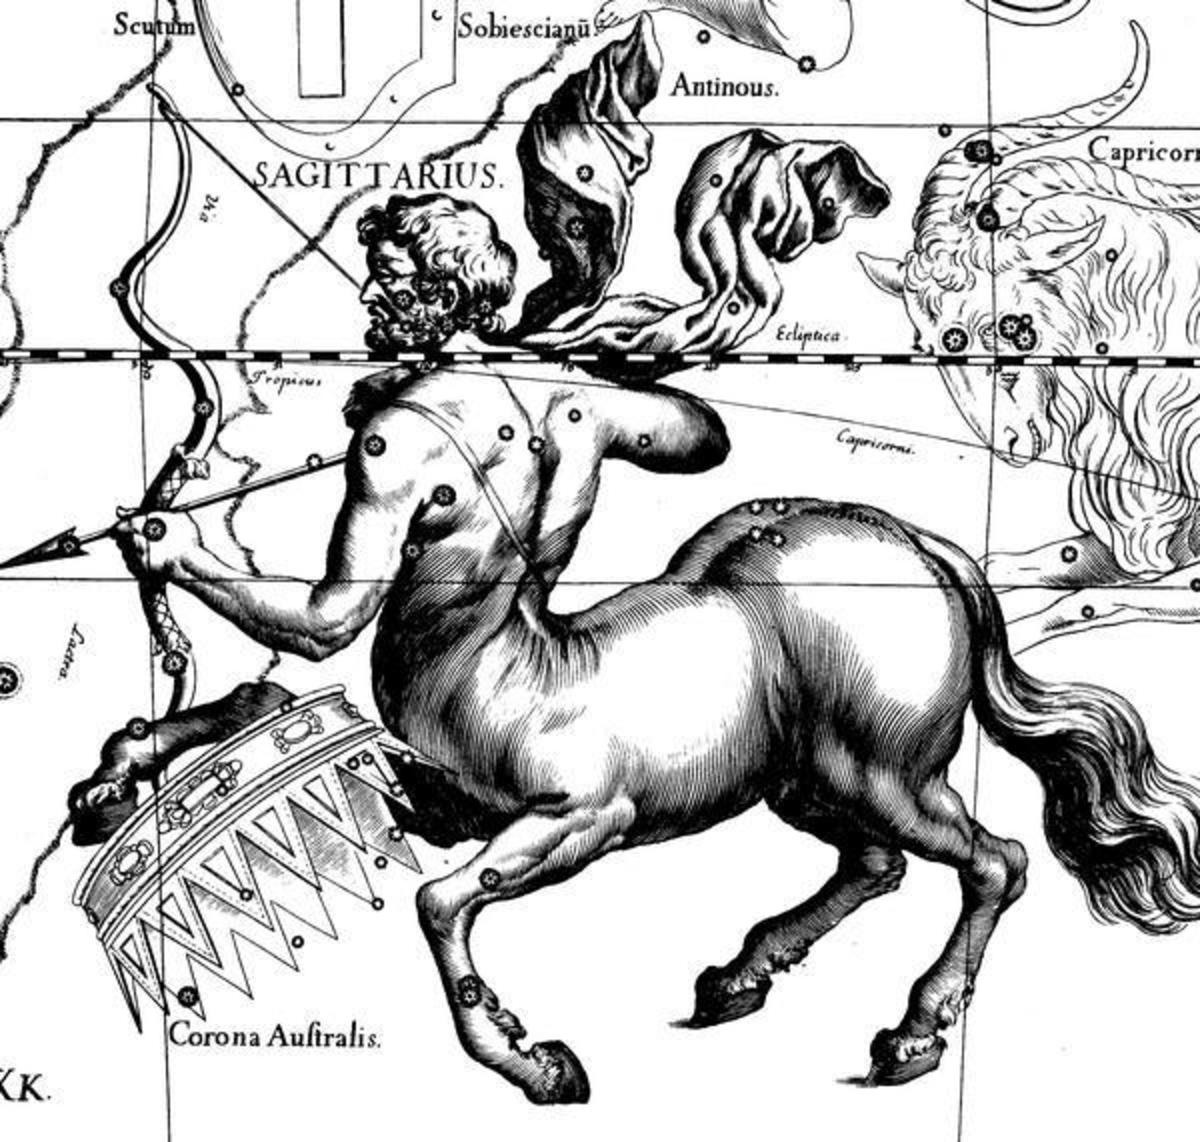 This is Sagittarius the constellation.  He is an ancient archer who is half man and half horse.